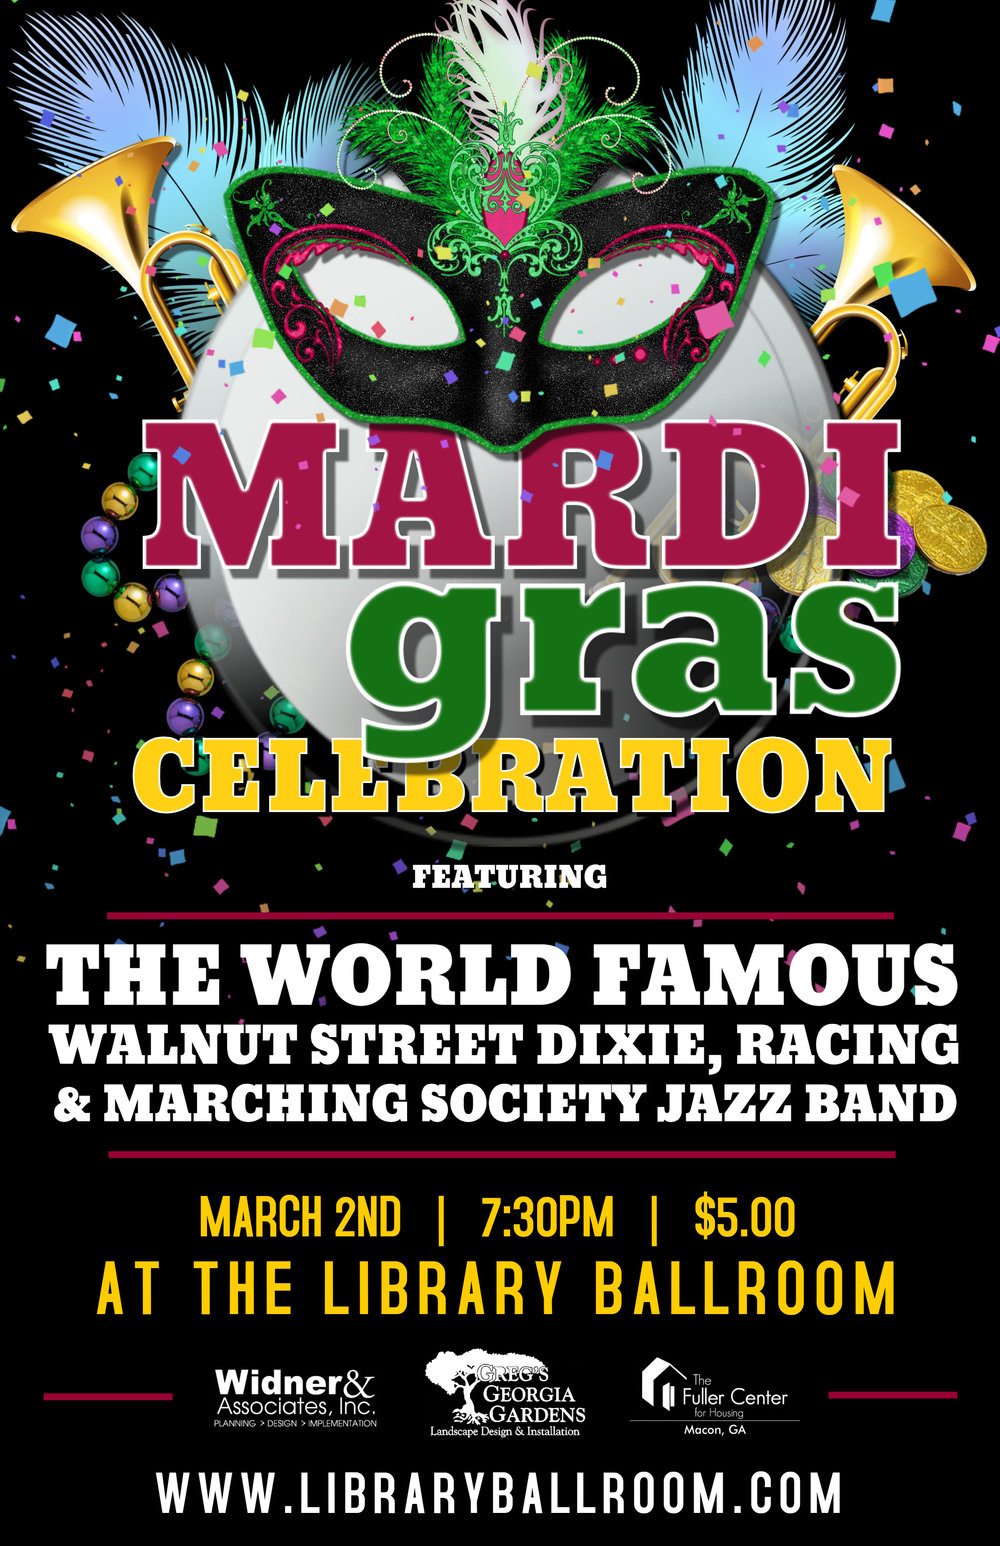 Mardi Gras with Walnut Street Society Jazz Band - Library Ballroom - March 2.jpg